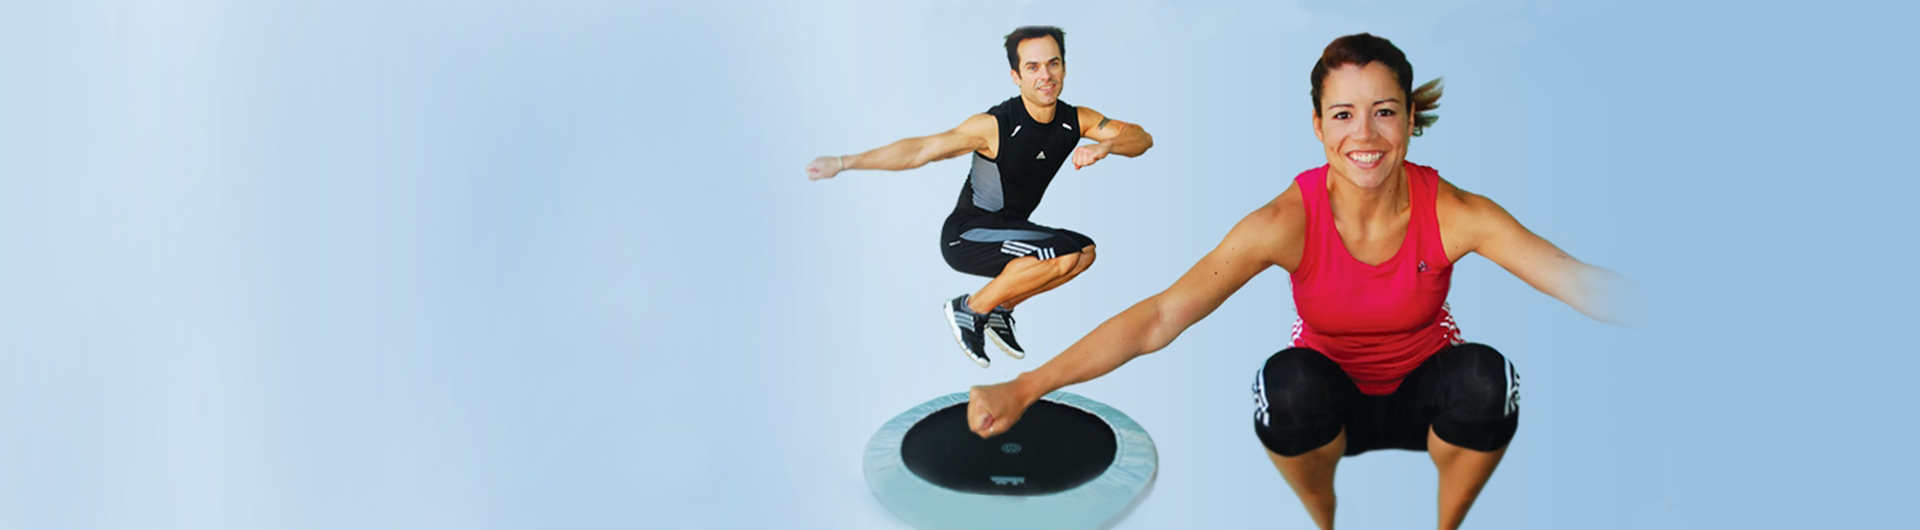 Discover the new explosive workout by Holmes Place. Available in all of our Clubs!